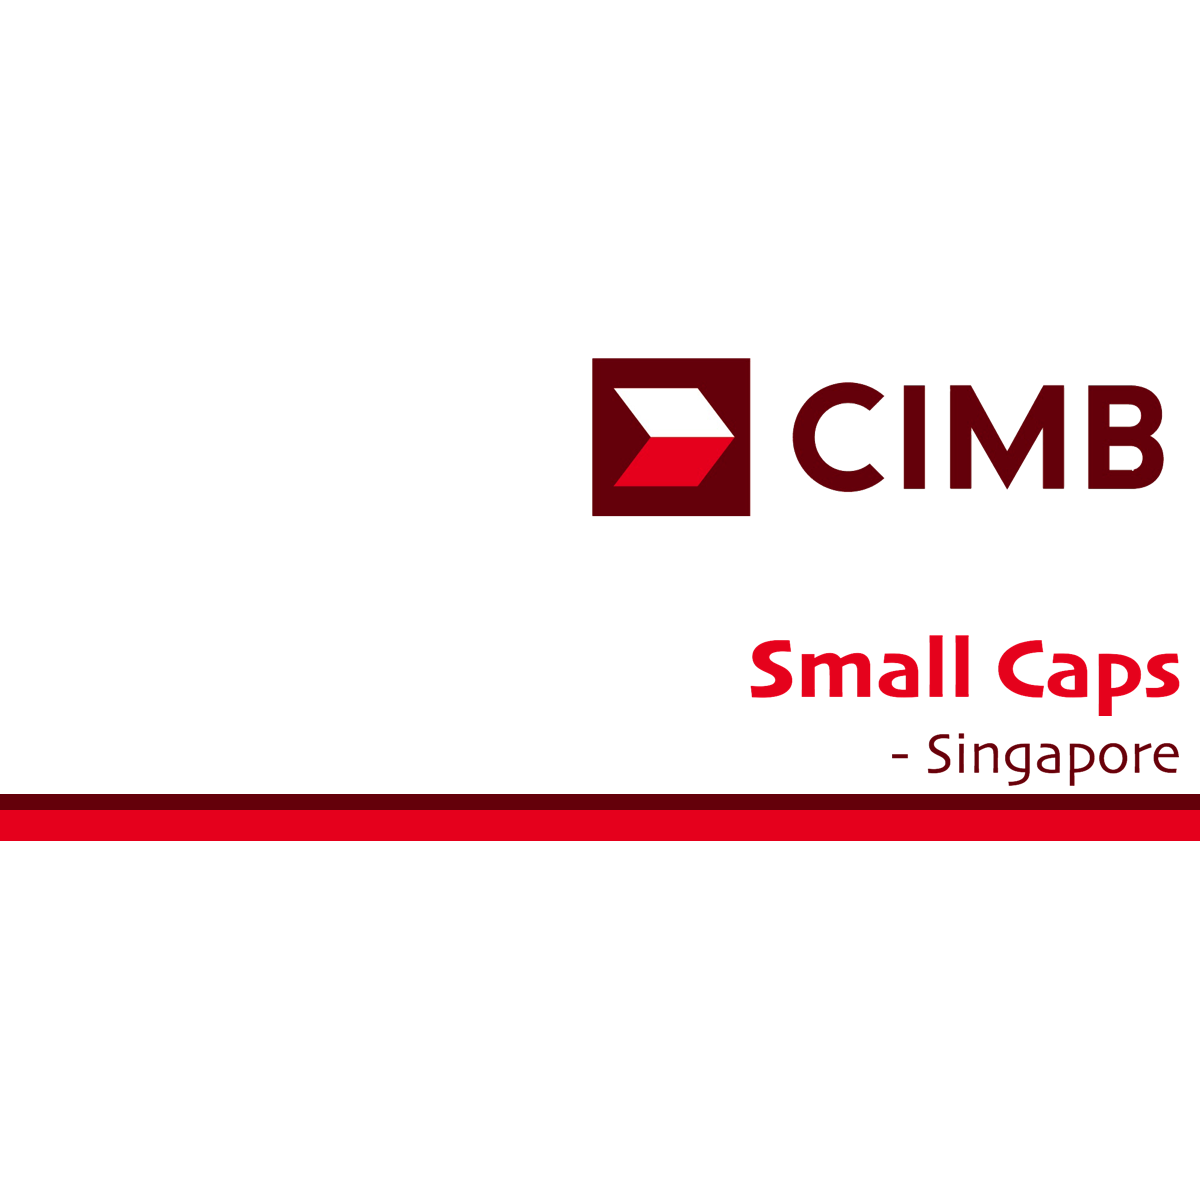 Smallcaps - CIMB Research 2017-05-18: Manufacturing Stocks Shine In 1Q17